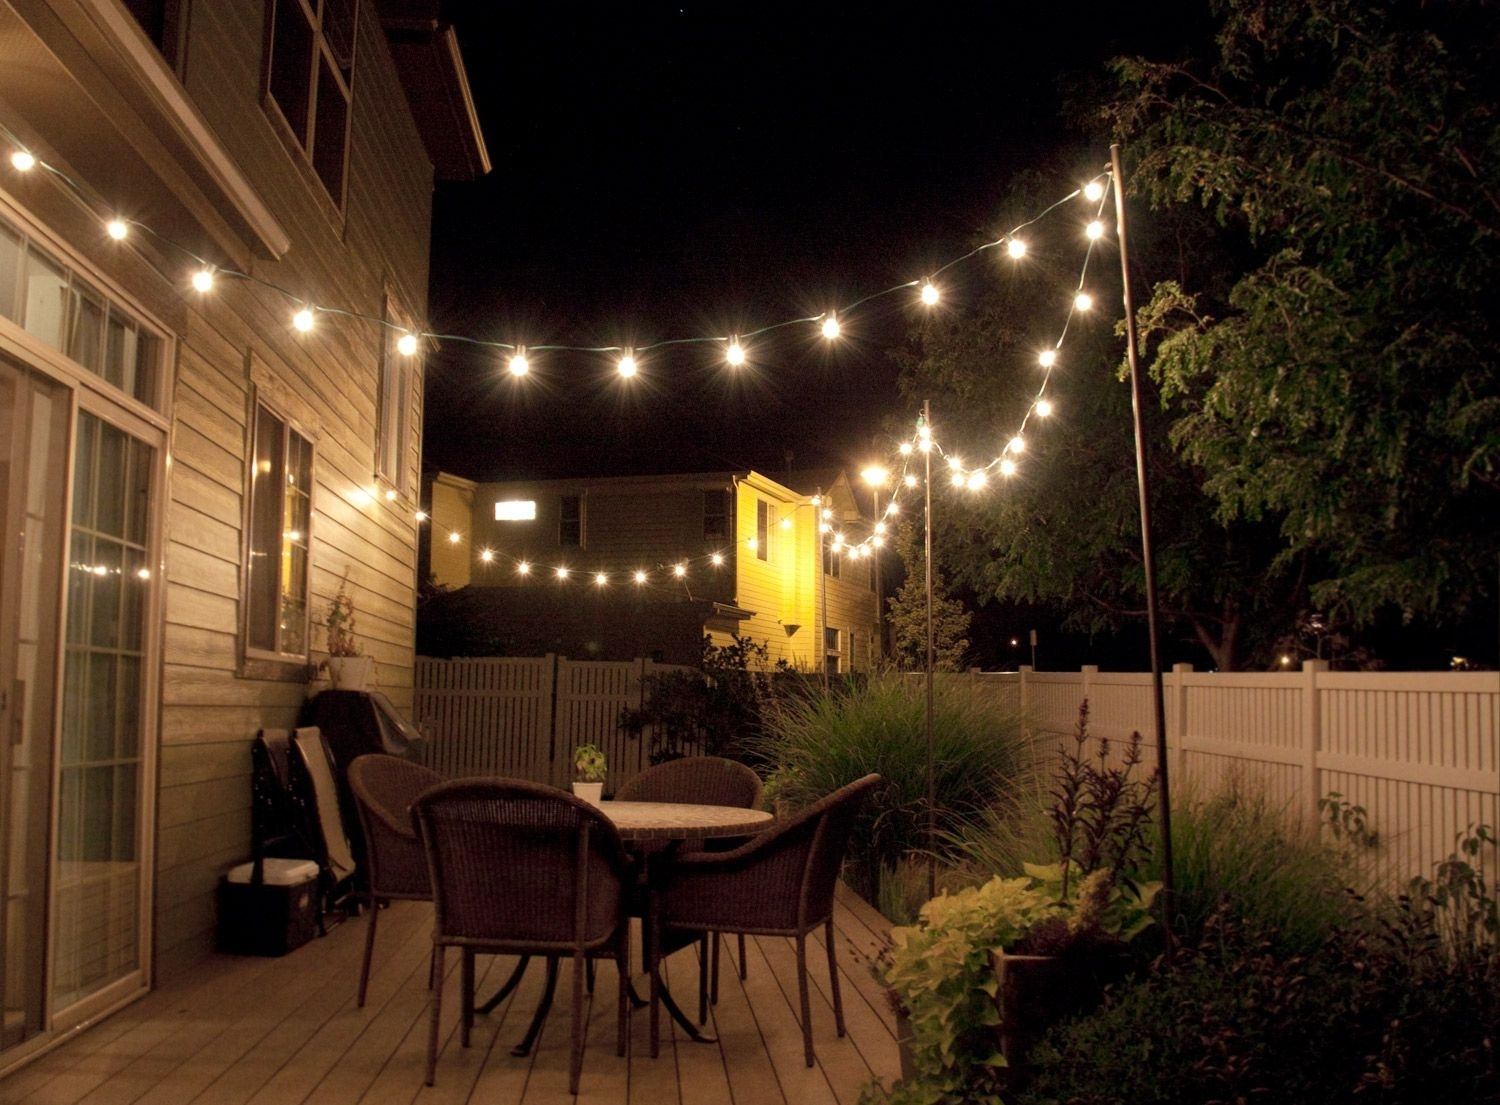 How To Make Inexpensive Poles To Hang String Lights On - Café Style pertaining to Outdoor Rope Lanterns (Image 9 of 20)